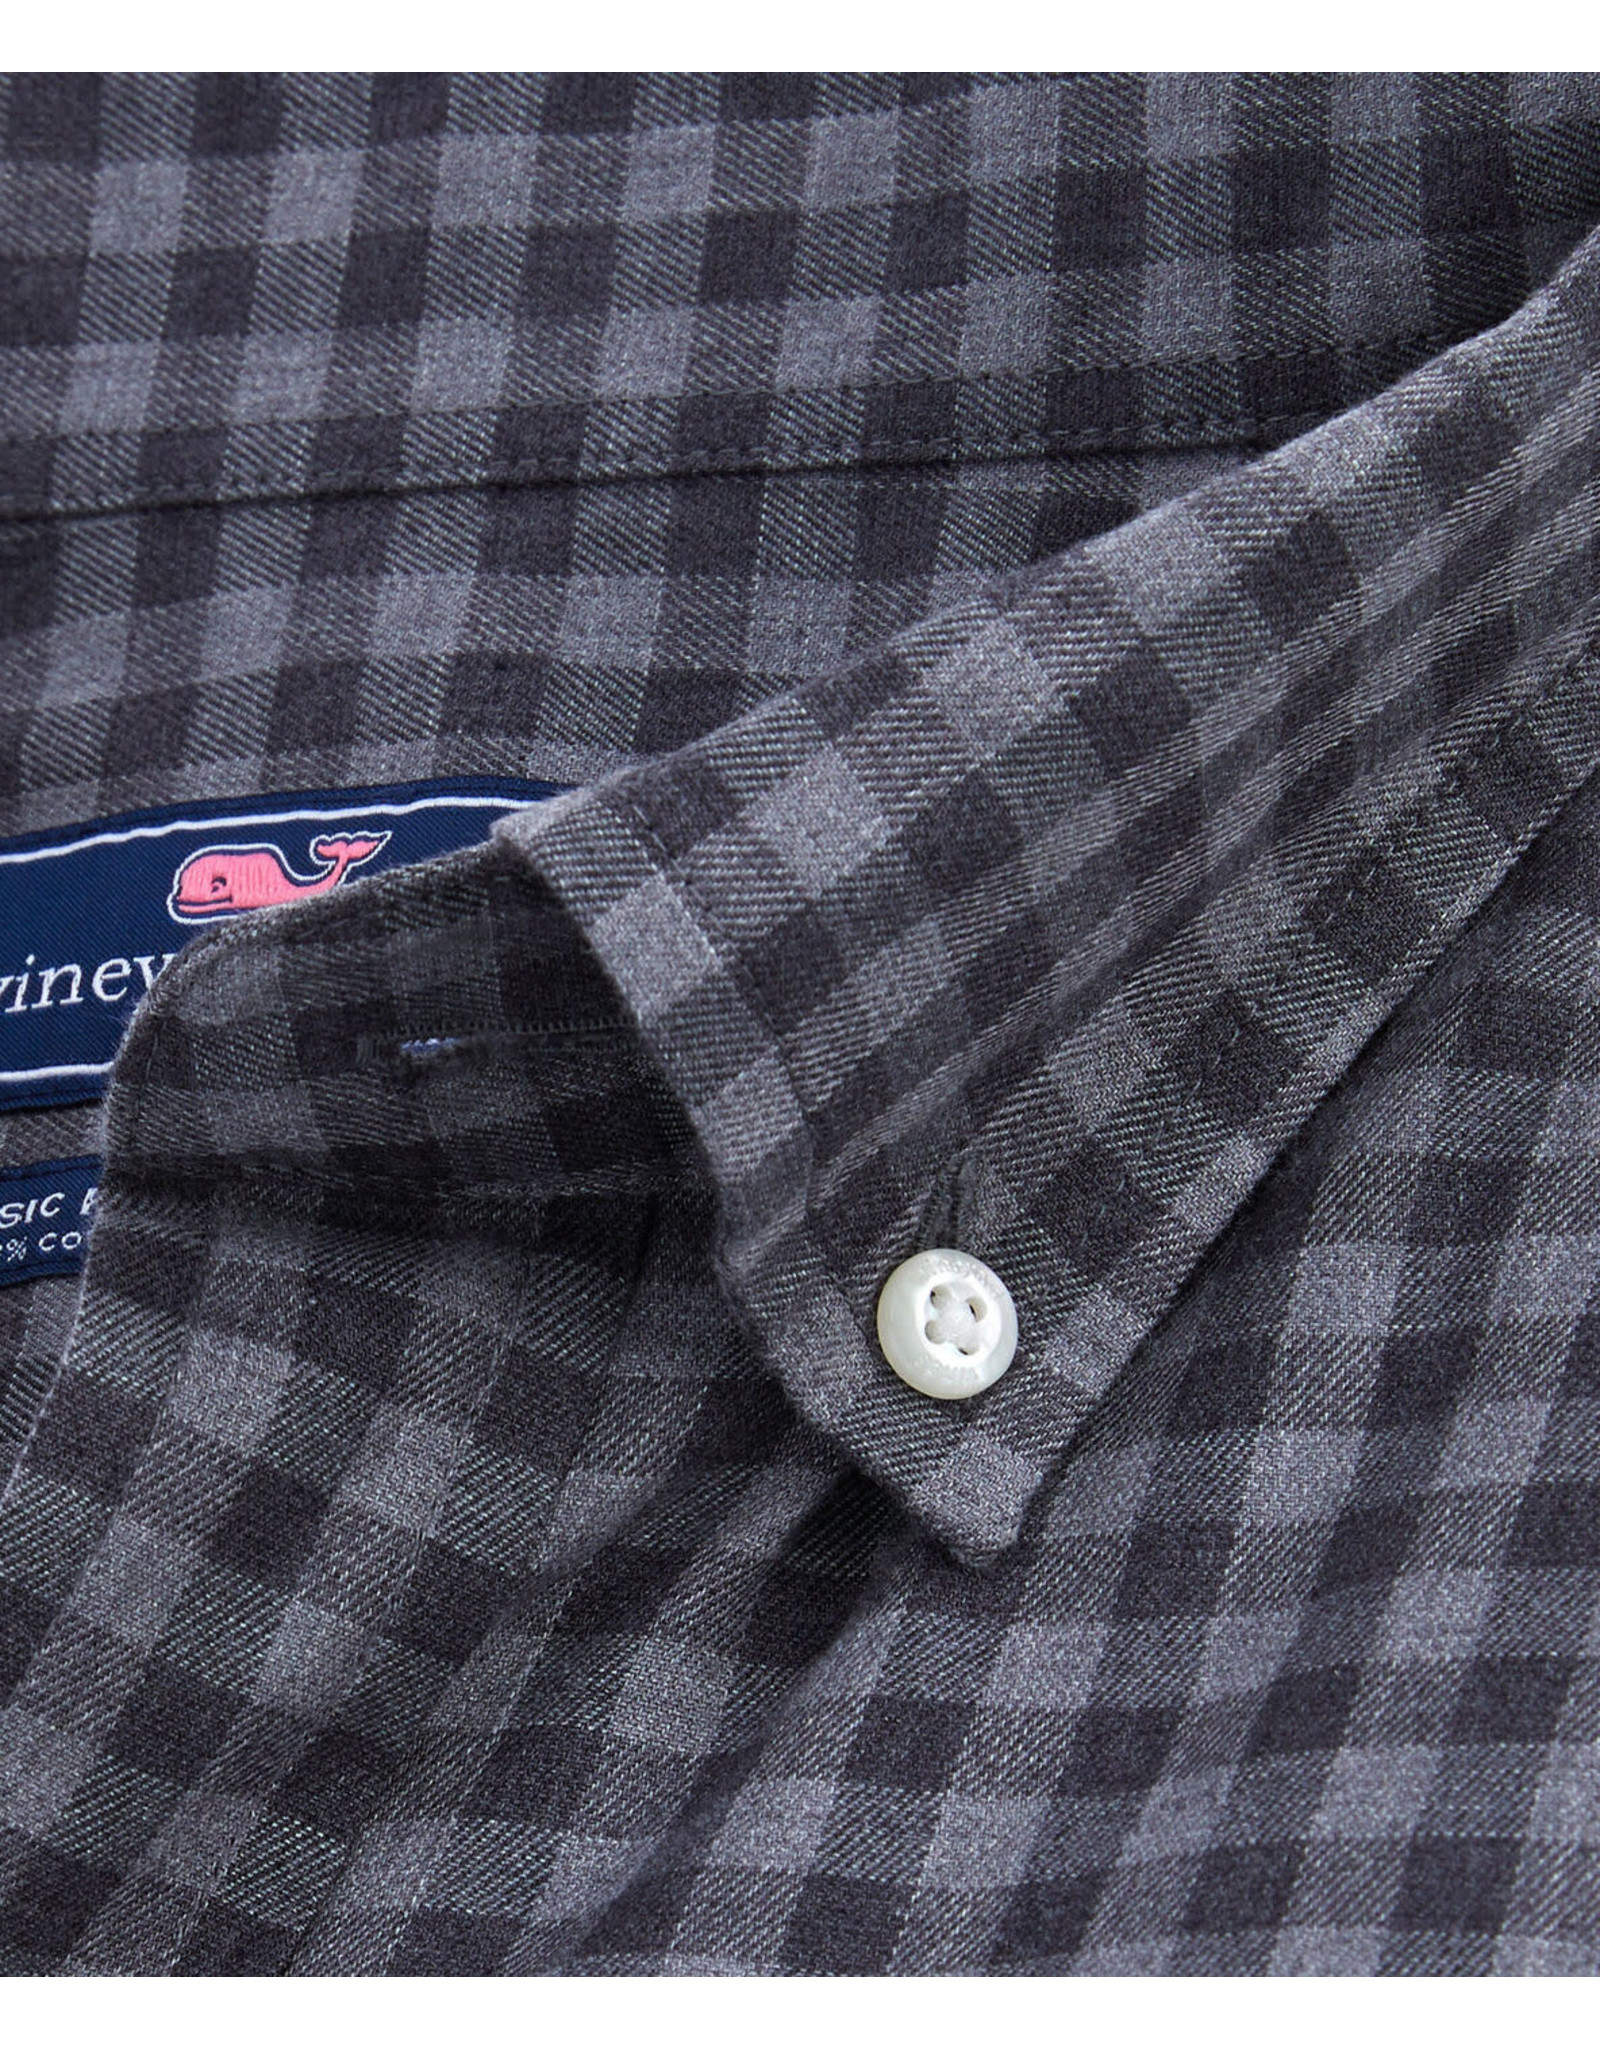 Vineyard Vines Vineyard Vines Sycamore Classic Tucker Button Down